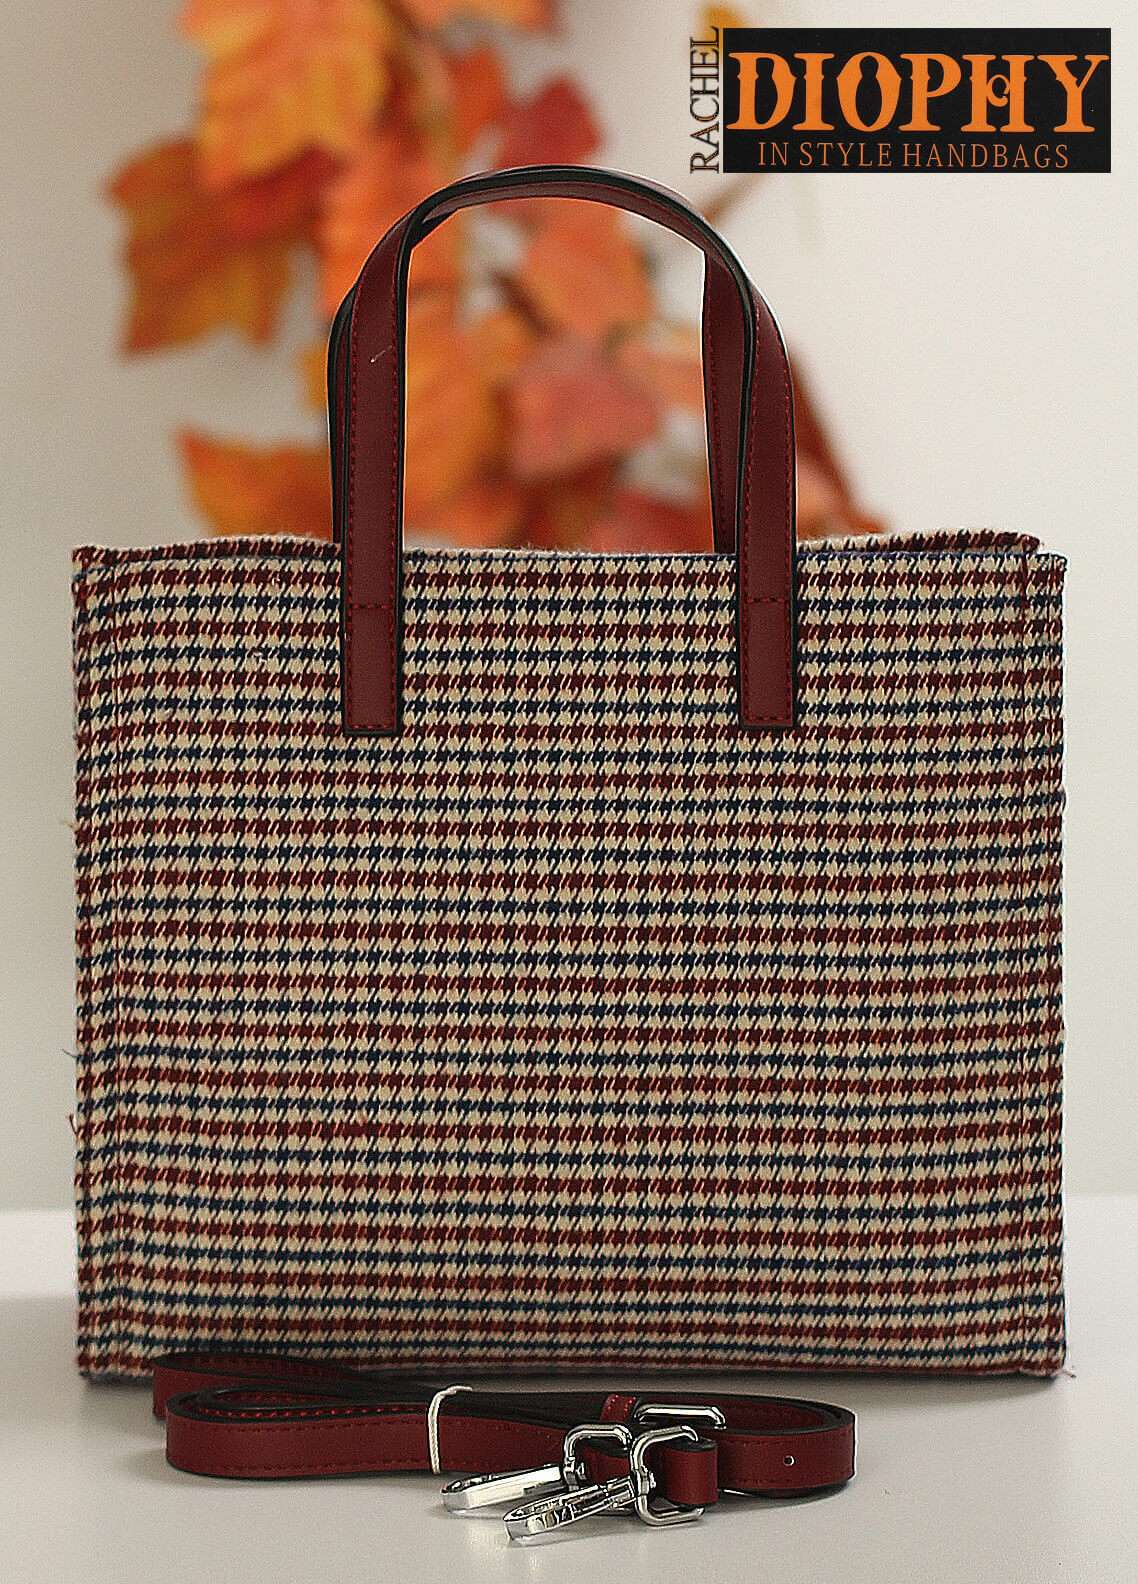 Rachel Diophy PU Leather Satchels Handbags for Women - Brown with Printed Yarn & Leather Stripes